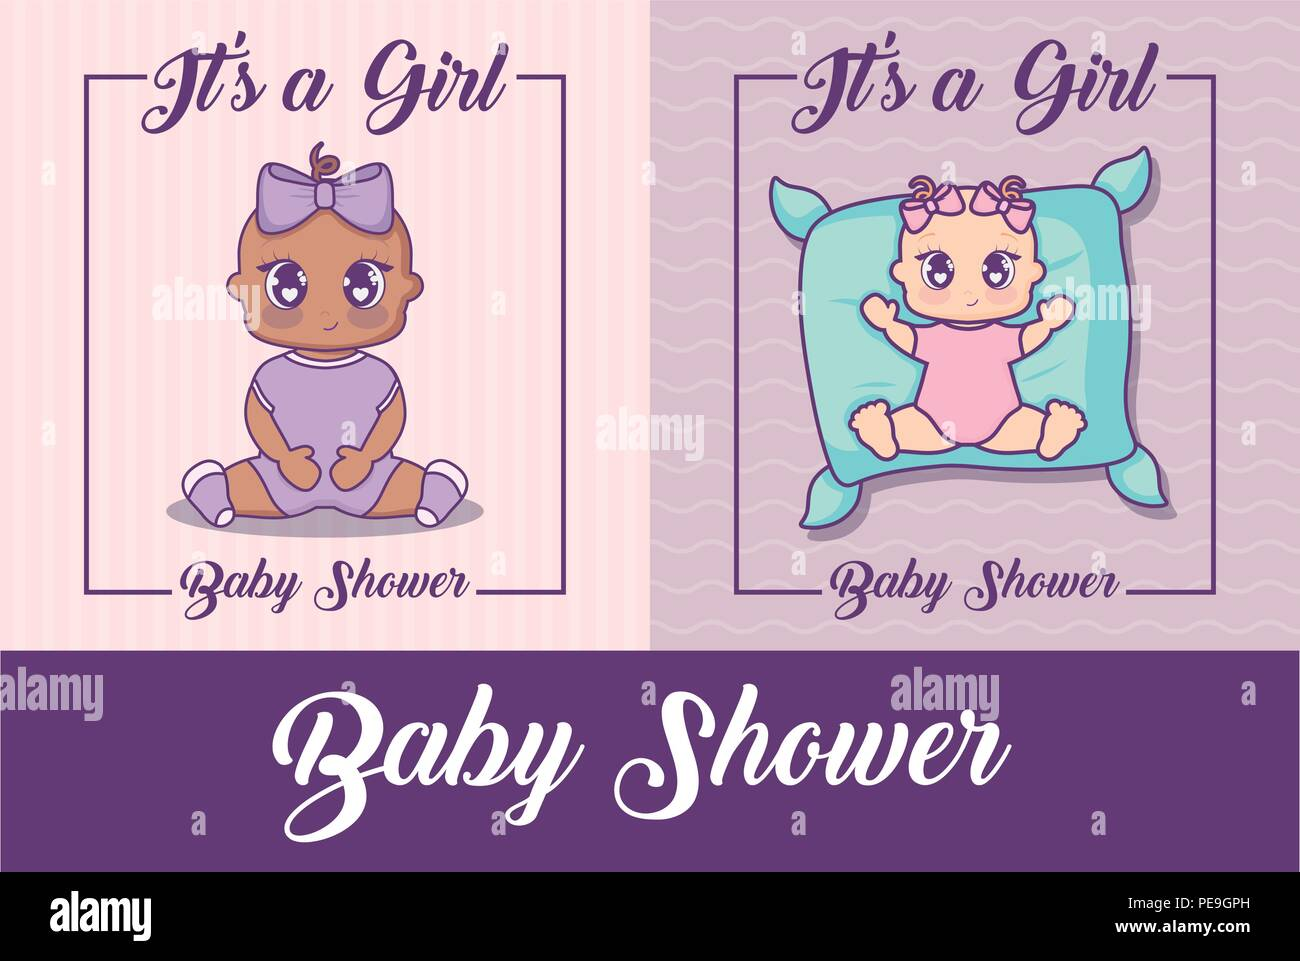 baby shower design with cute baby girls over colorful background, vector illustration - Stock Vector